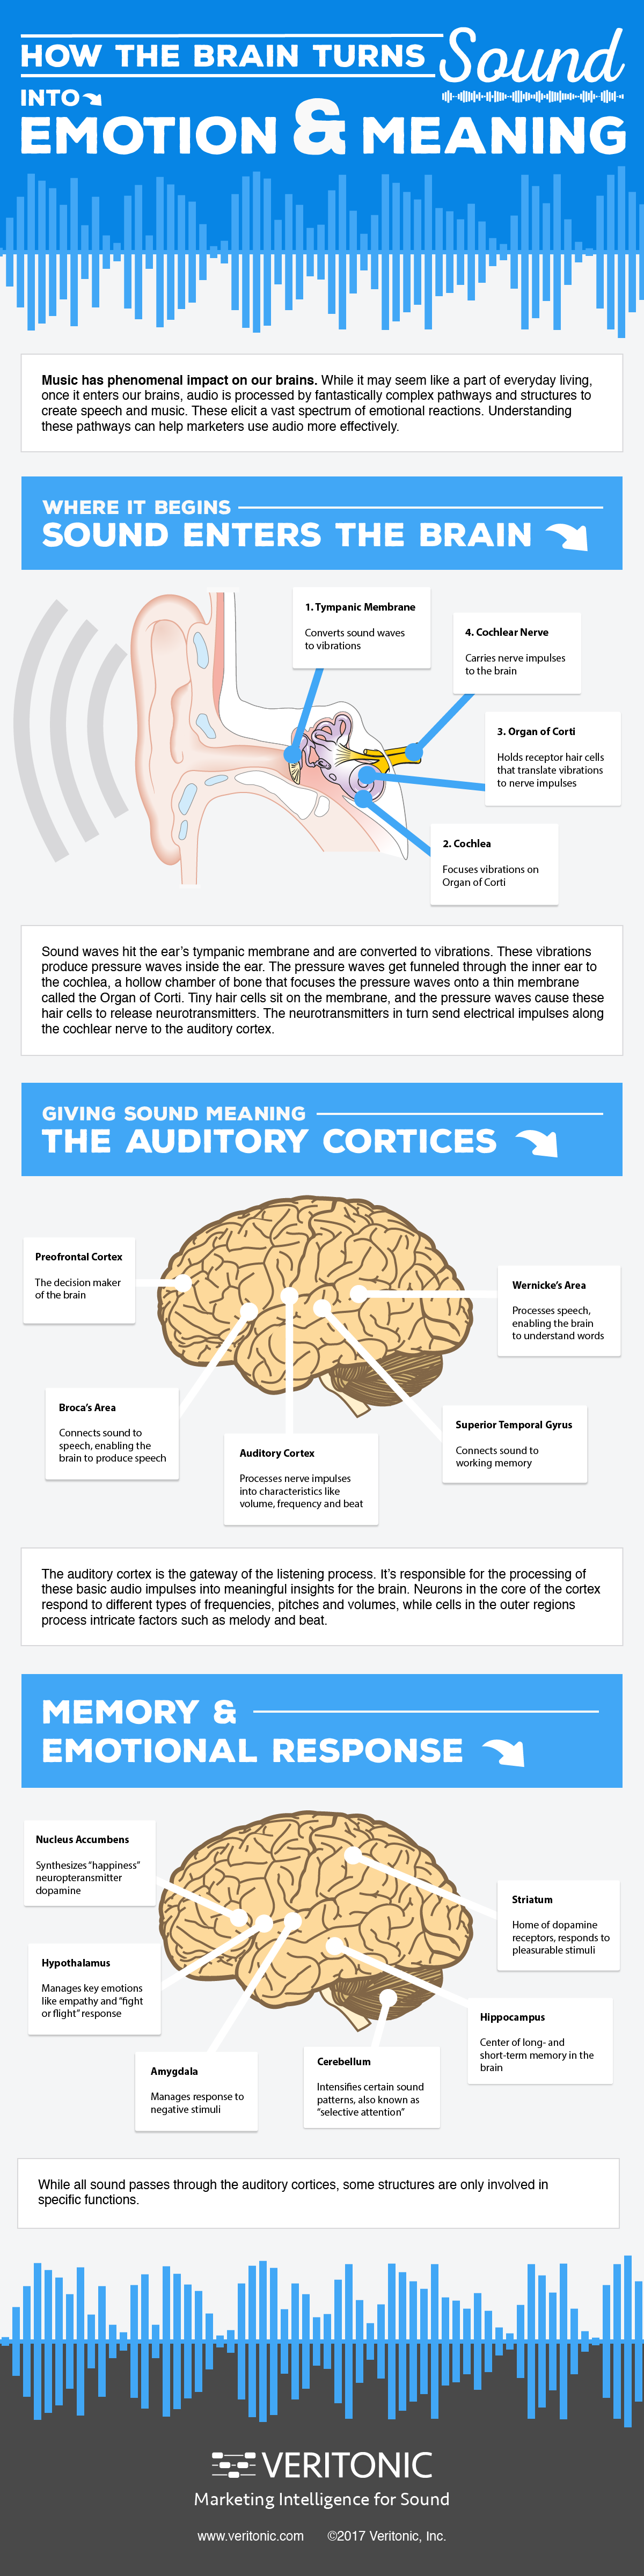 How the brain turns sound into emotion and meaning - Veritonic